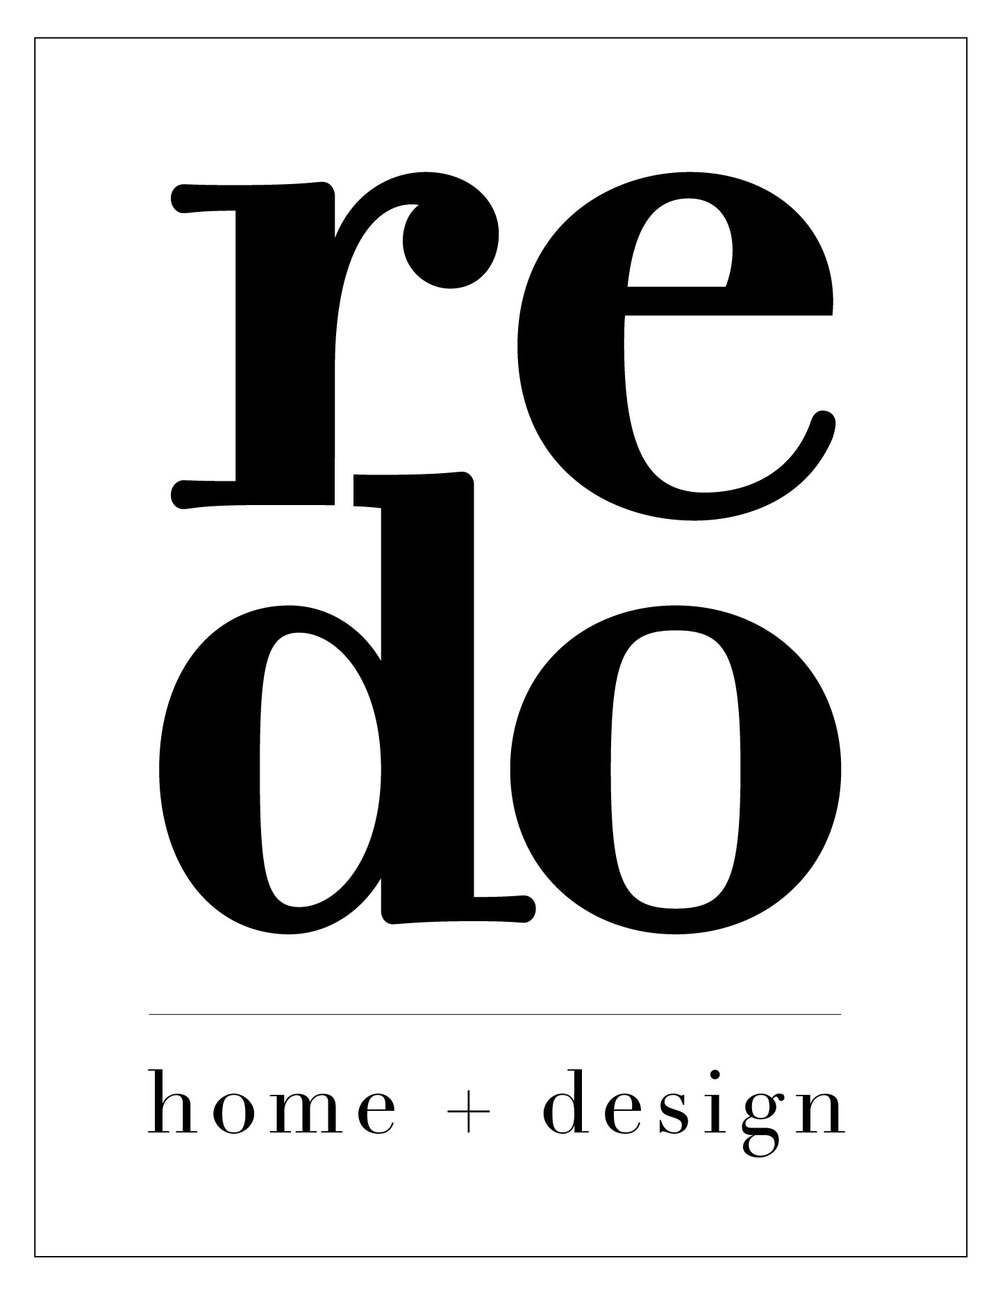 Redo Home + Design | Nashville, TN